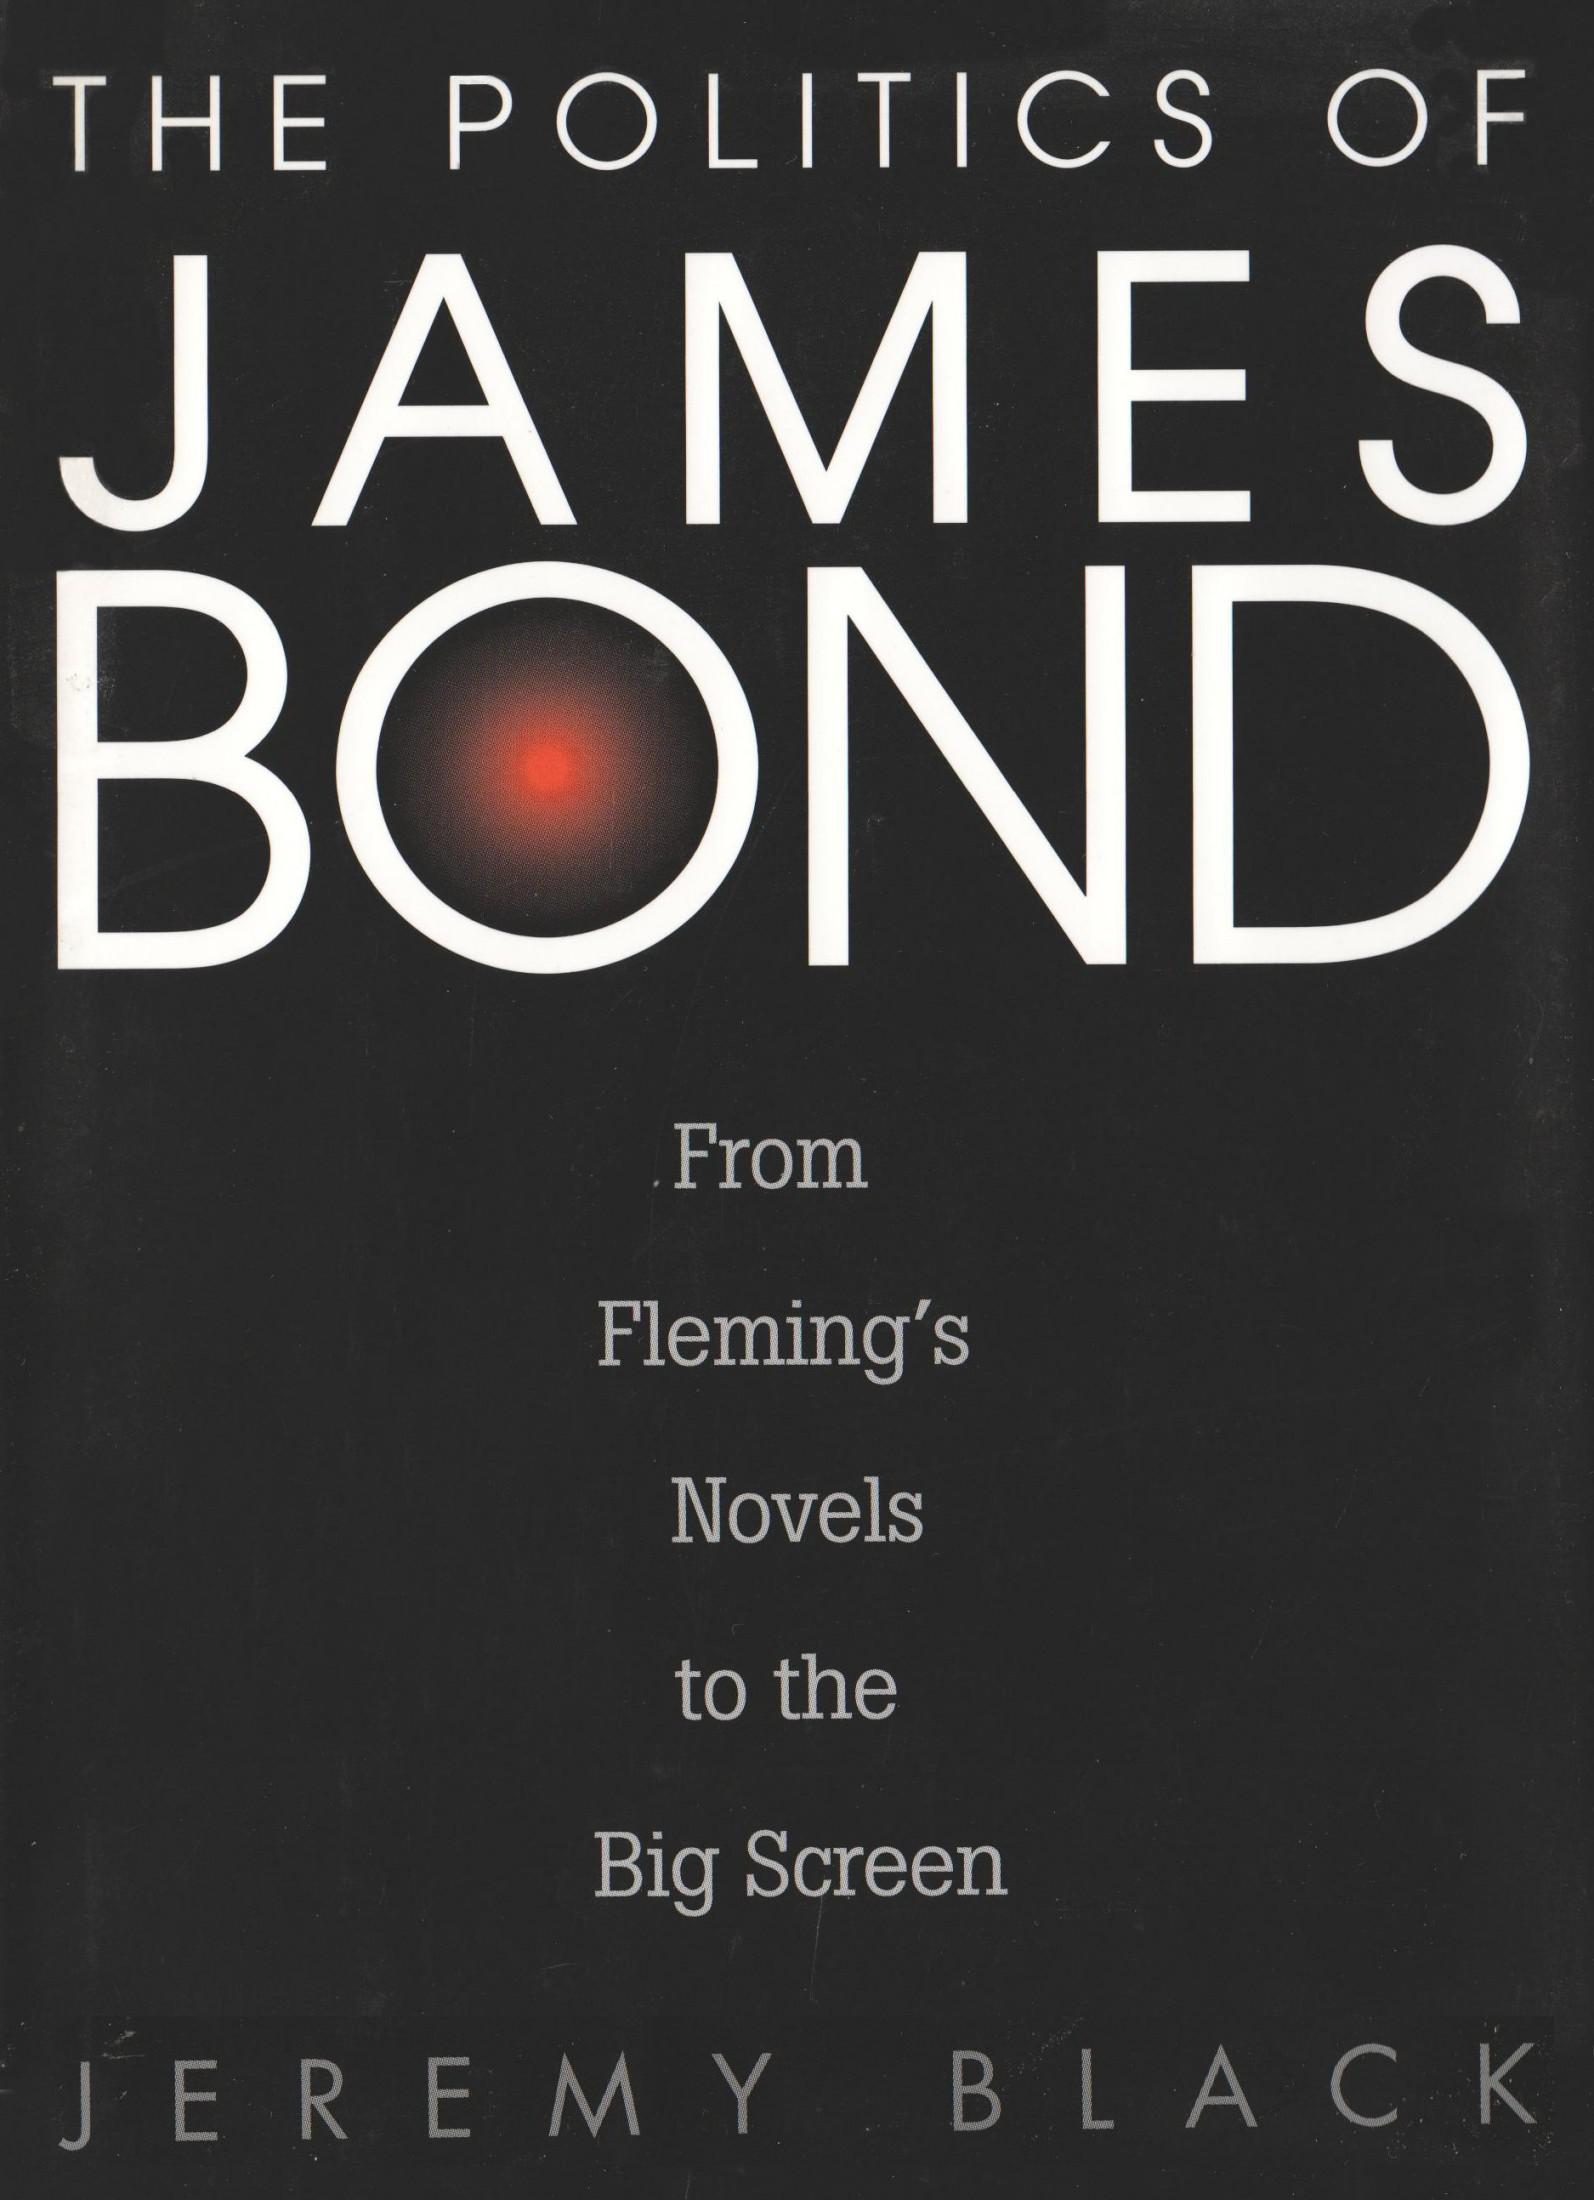 The Politics of James Bond 1st Edition Pdf Free Download